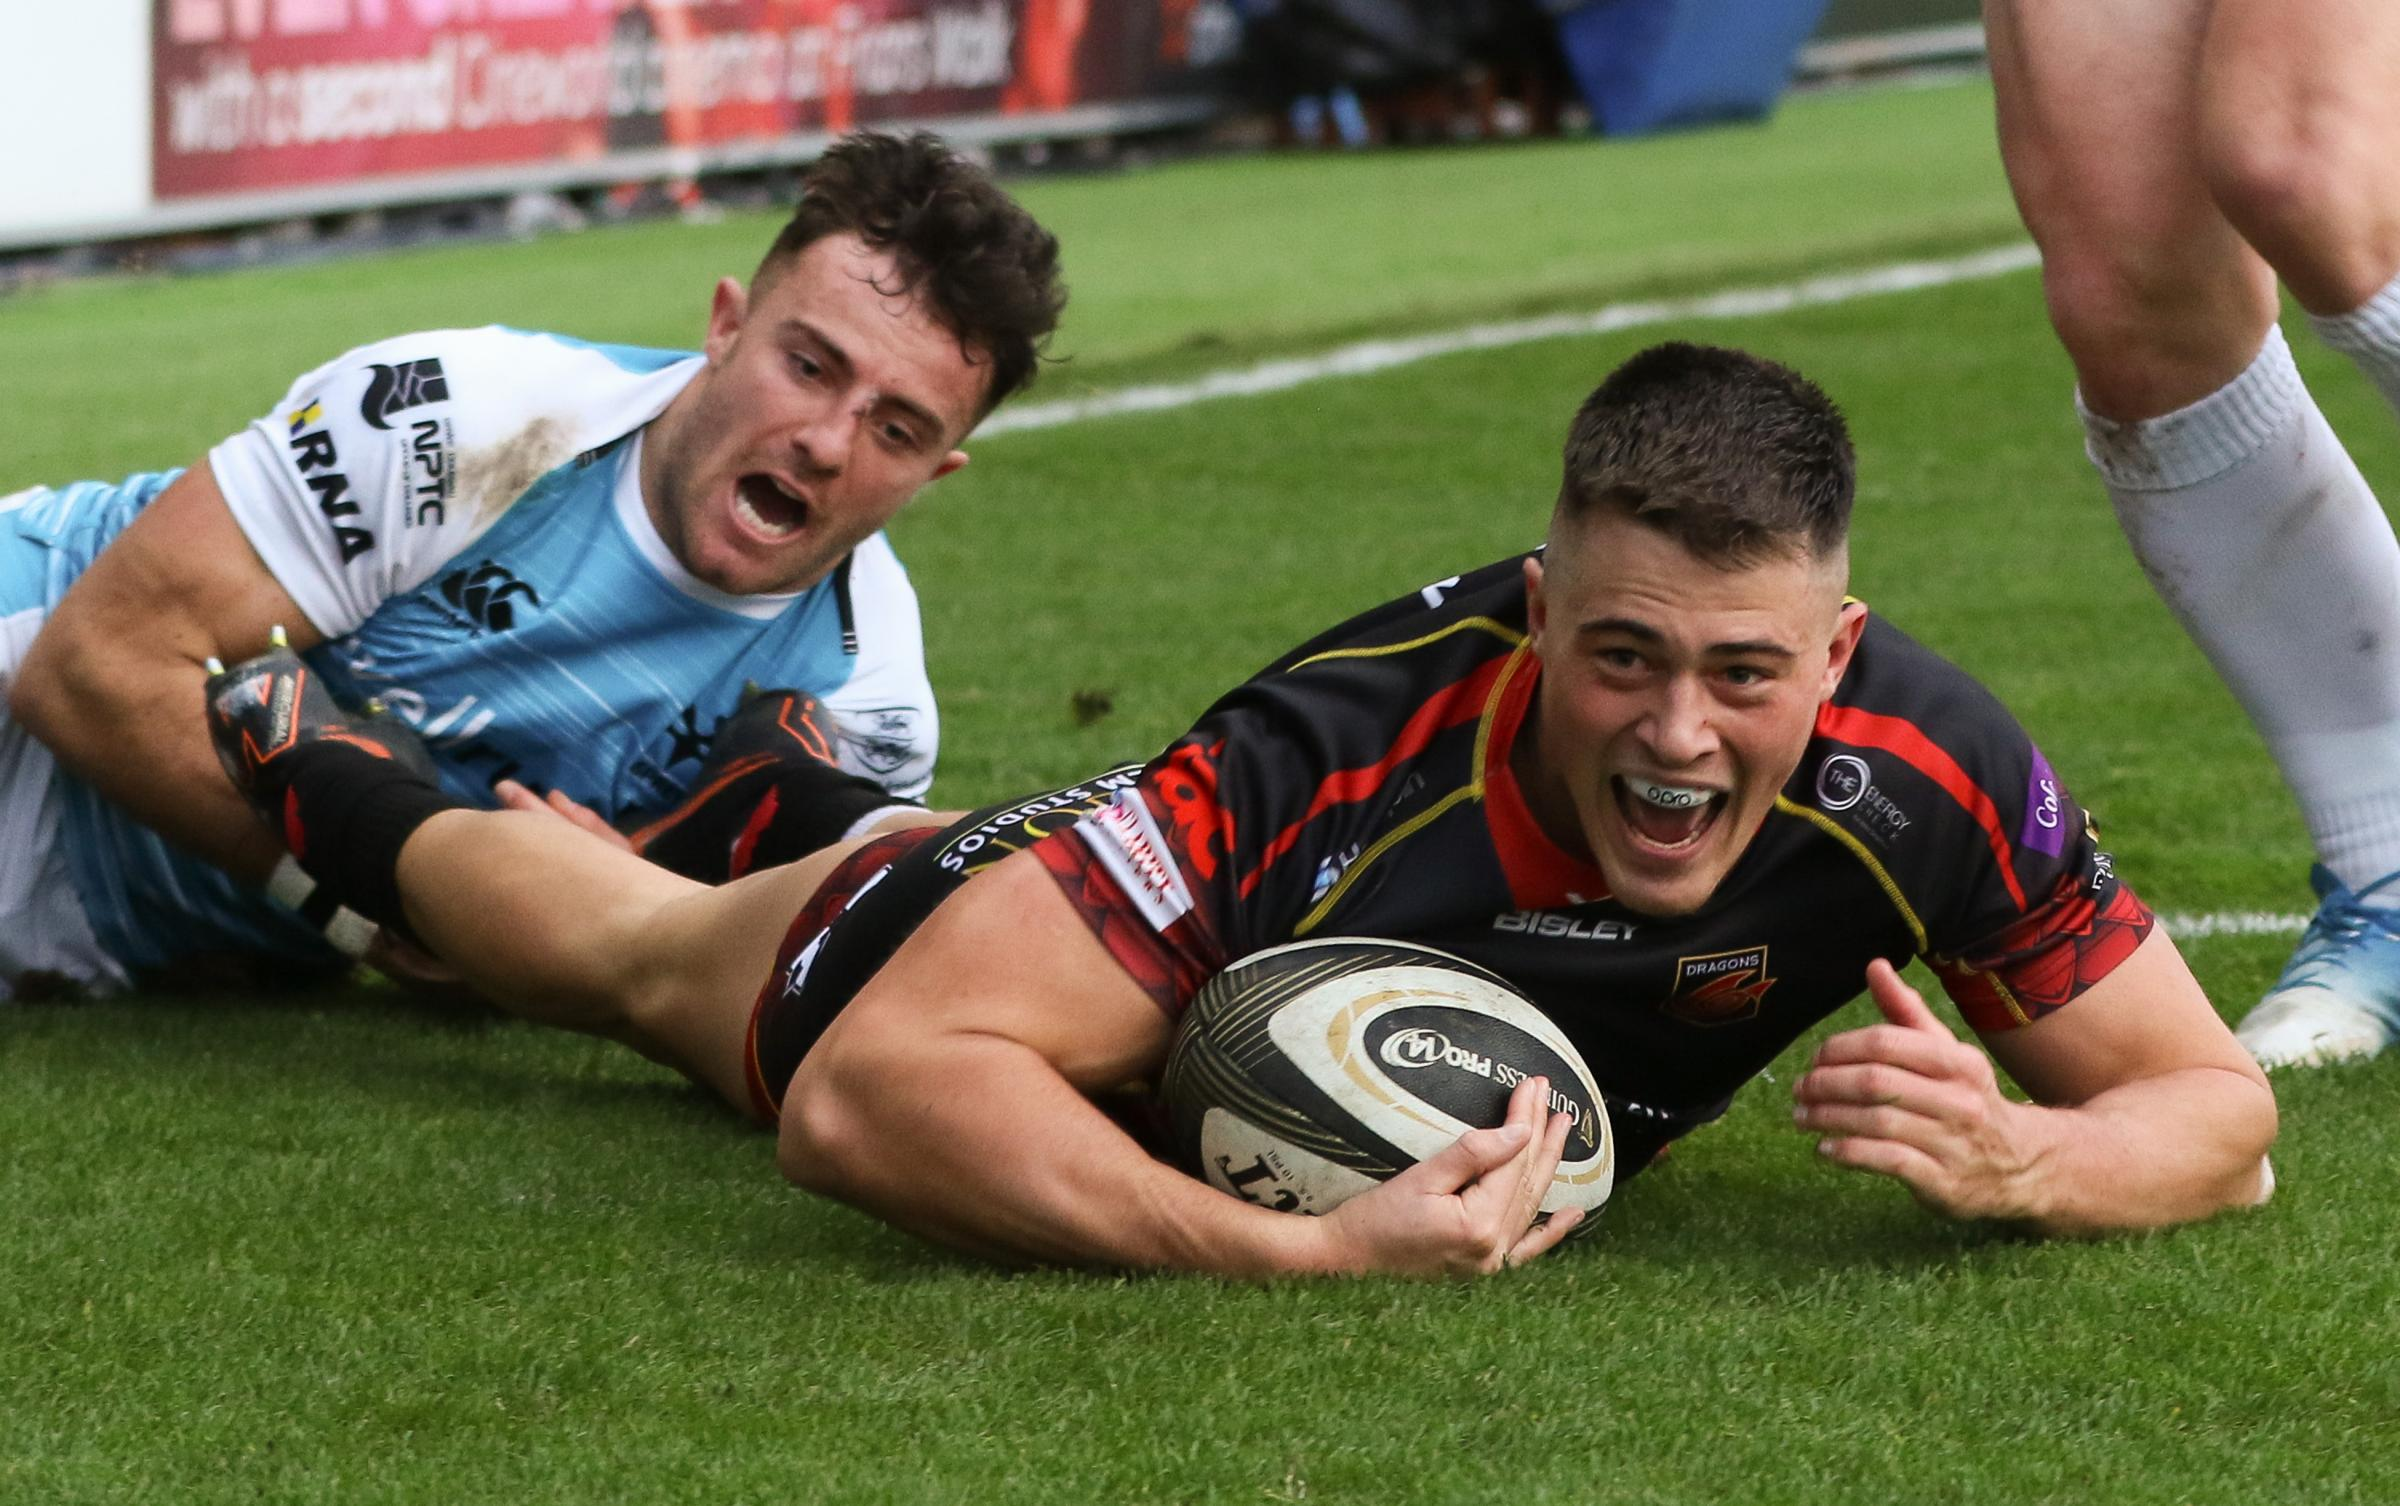 Abersychan's Jared Rosser scores his wonder try for the Dragons in their derby victory over the Ospreys on Sunday. Picture: Huw Evans Agency